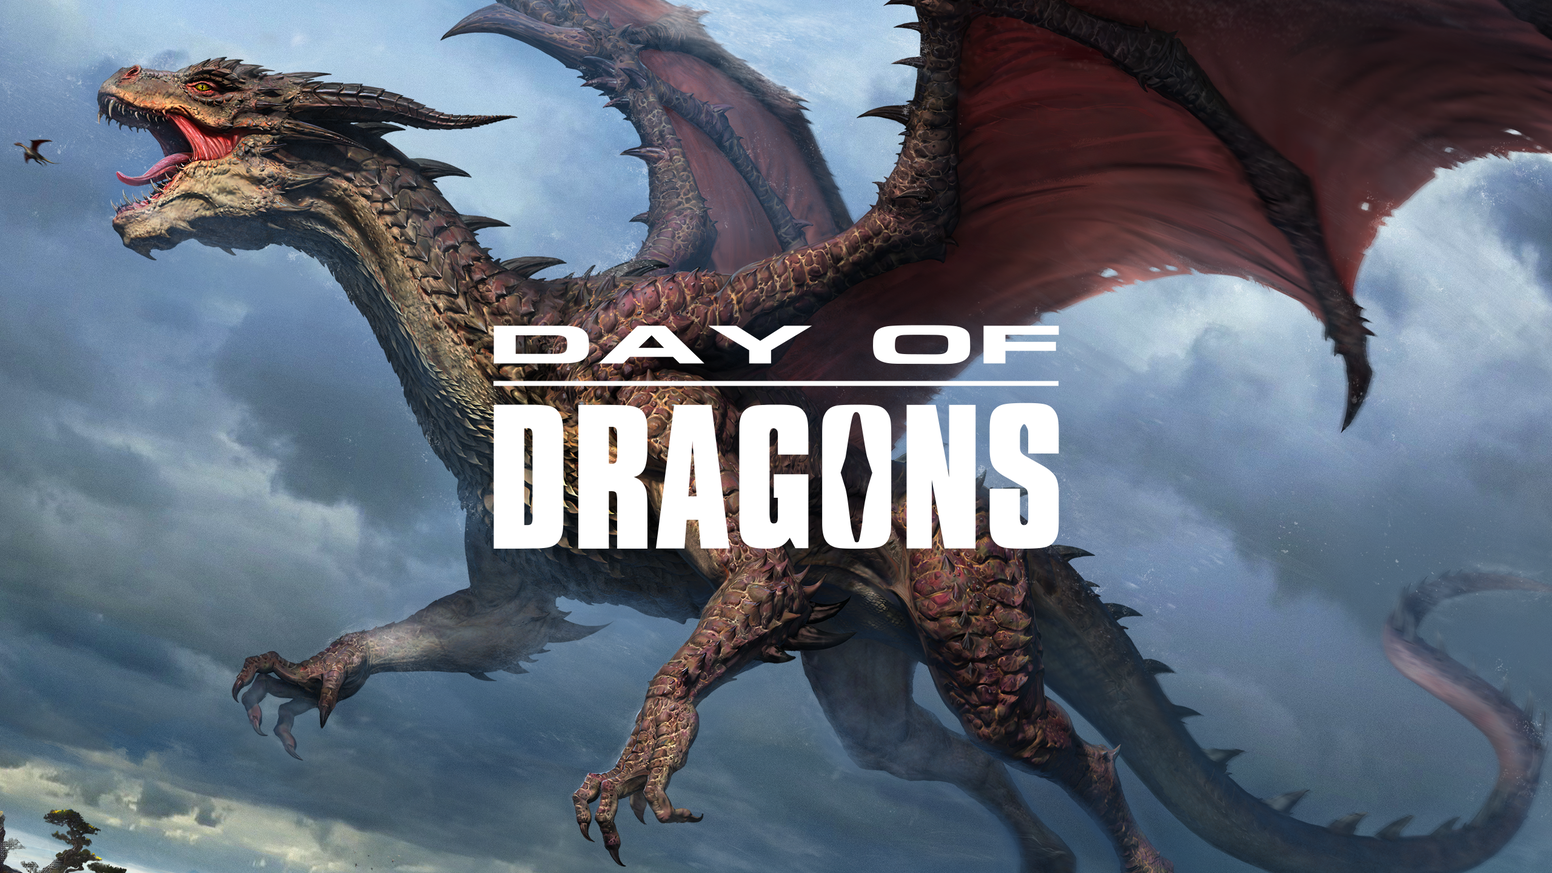 Day of Dragons is an online creature survival sandbox PC game set in a large, beautiful, open world with multiple biomes. Coming to Steam Early Access December 4th, 2019.